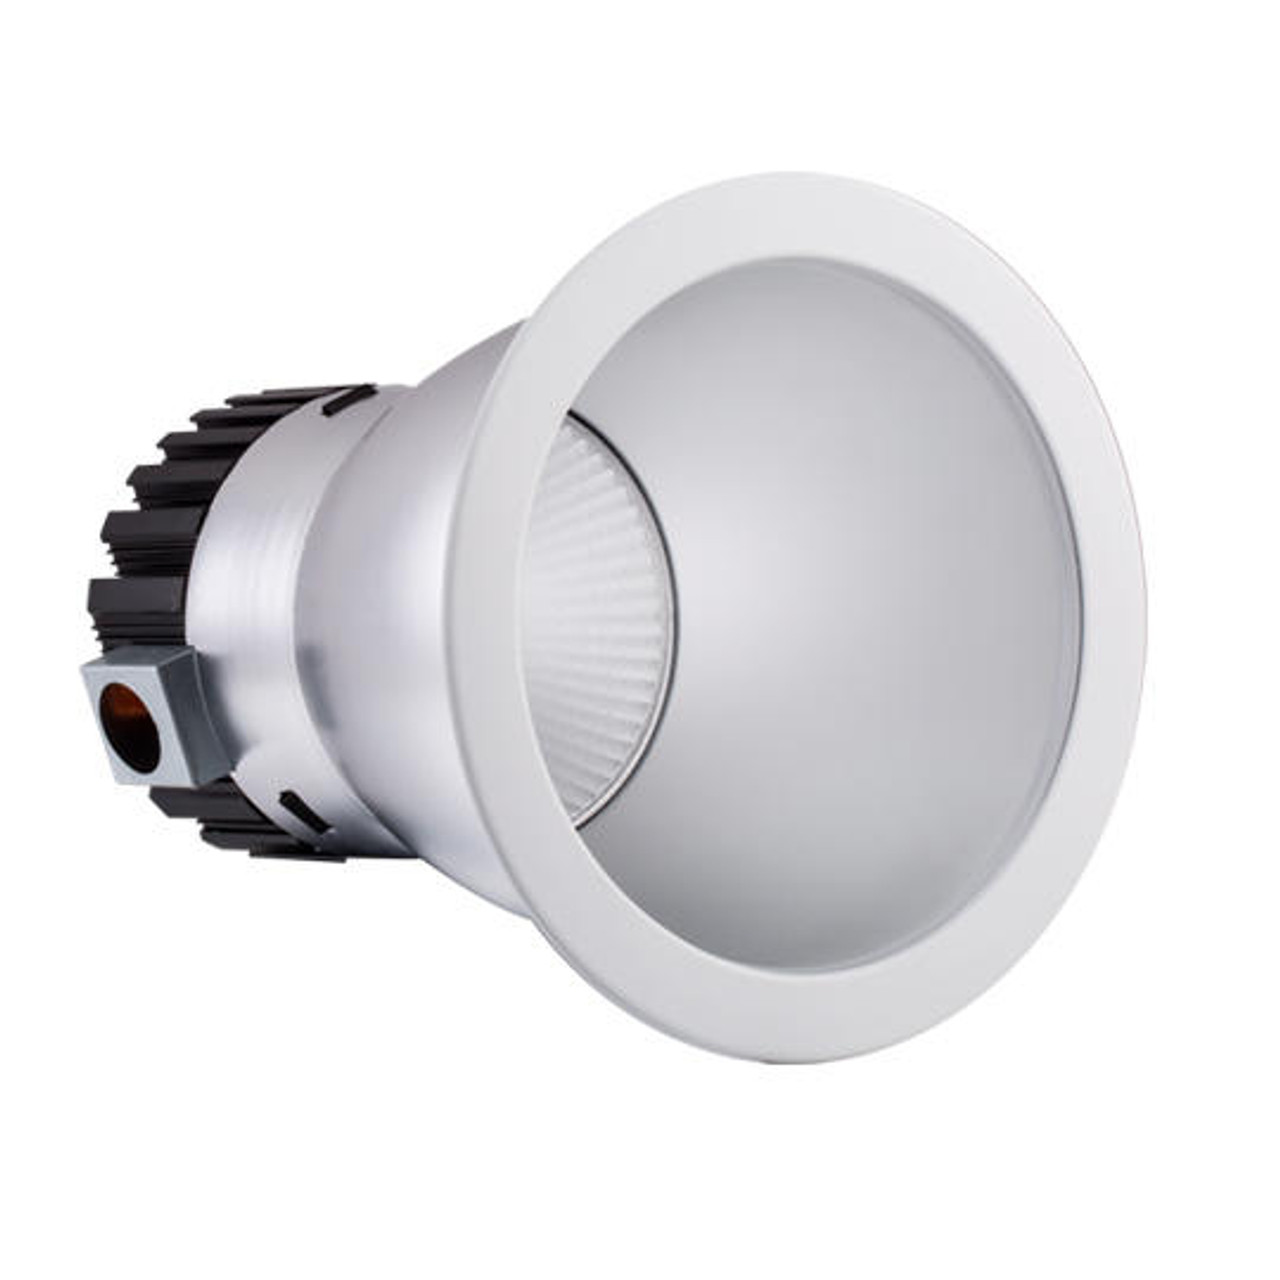 6 inch LED Commercial down light  - inside view